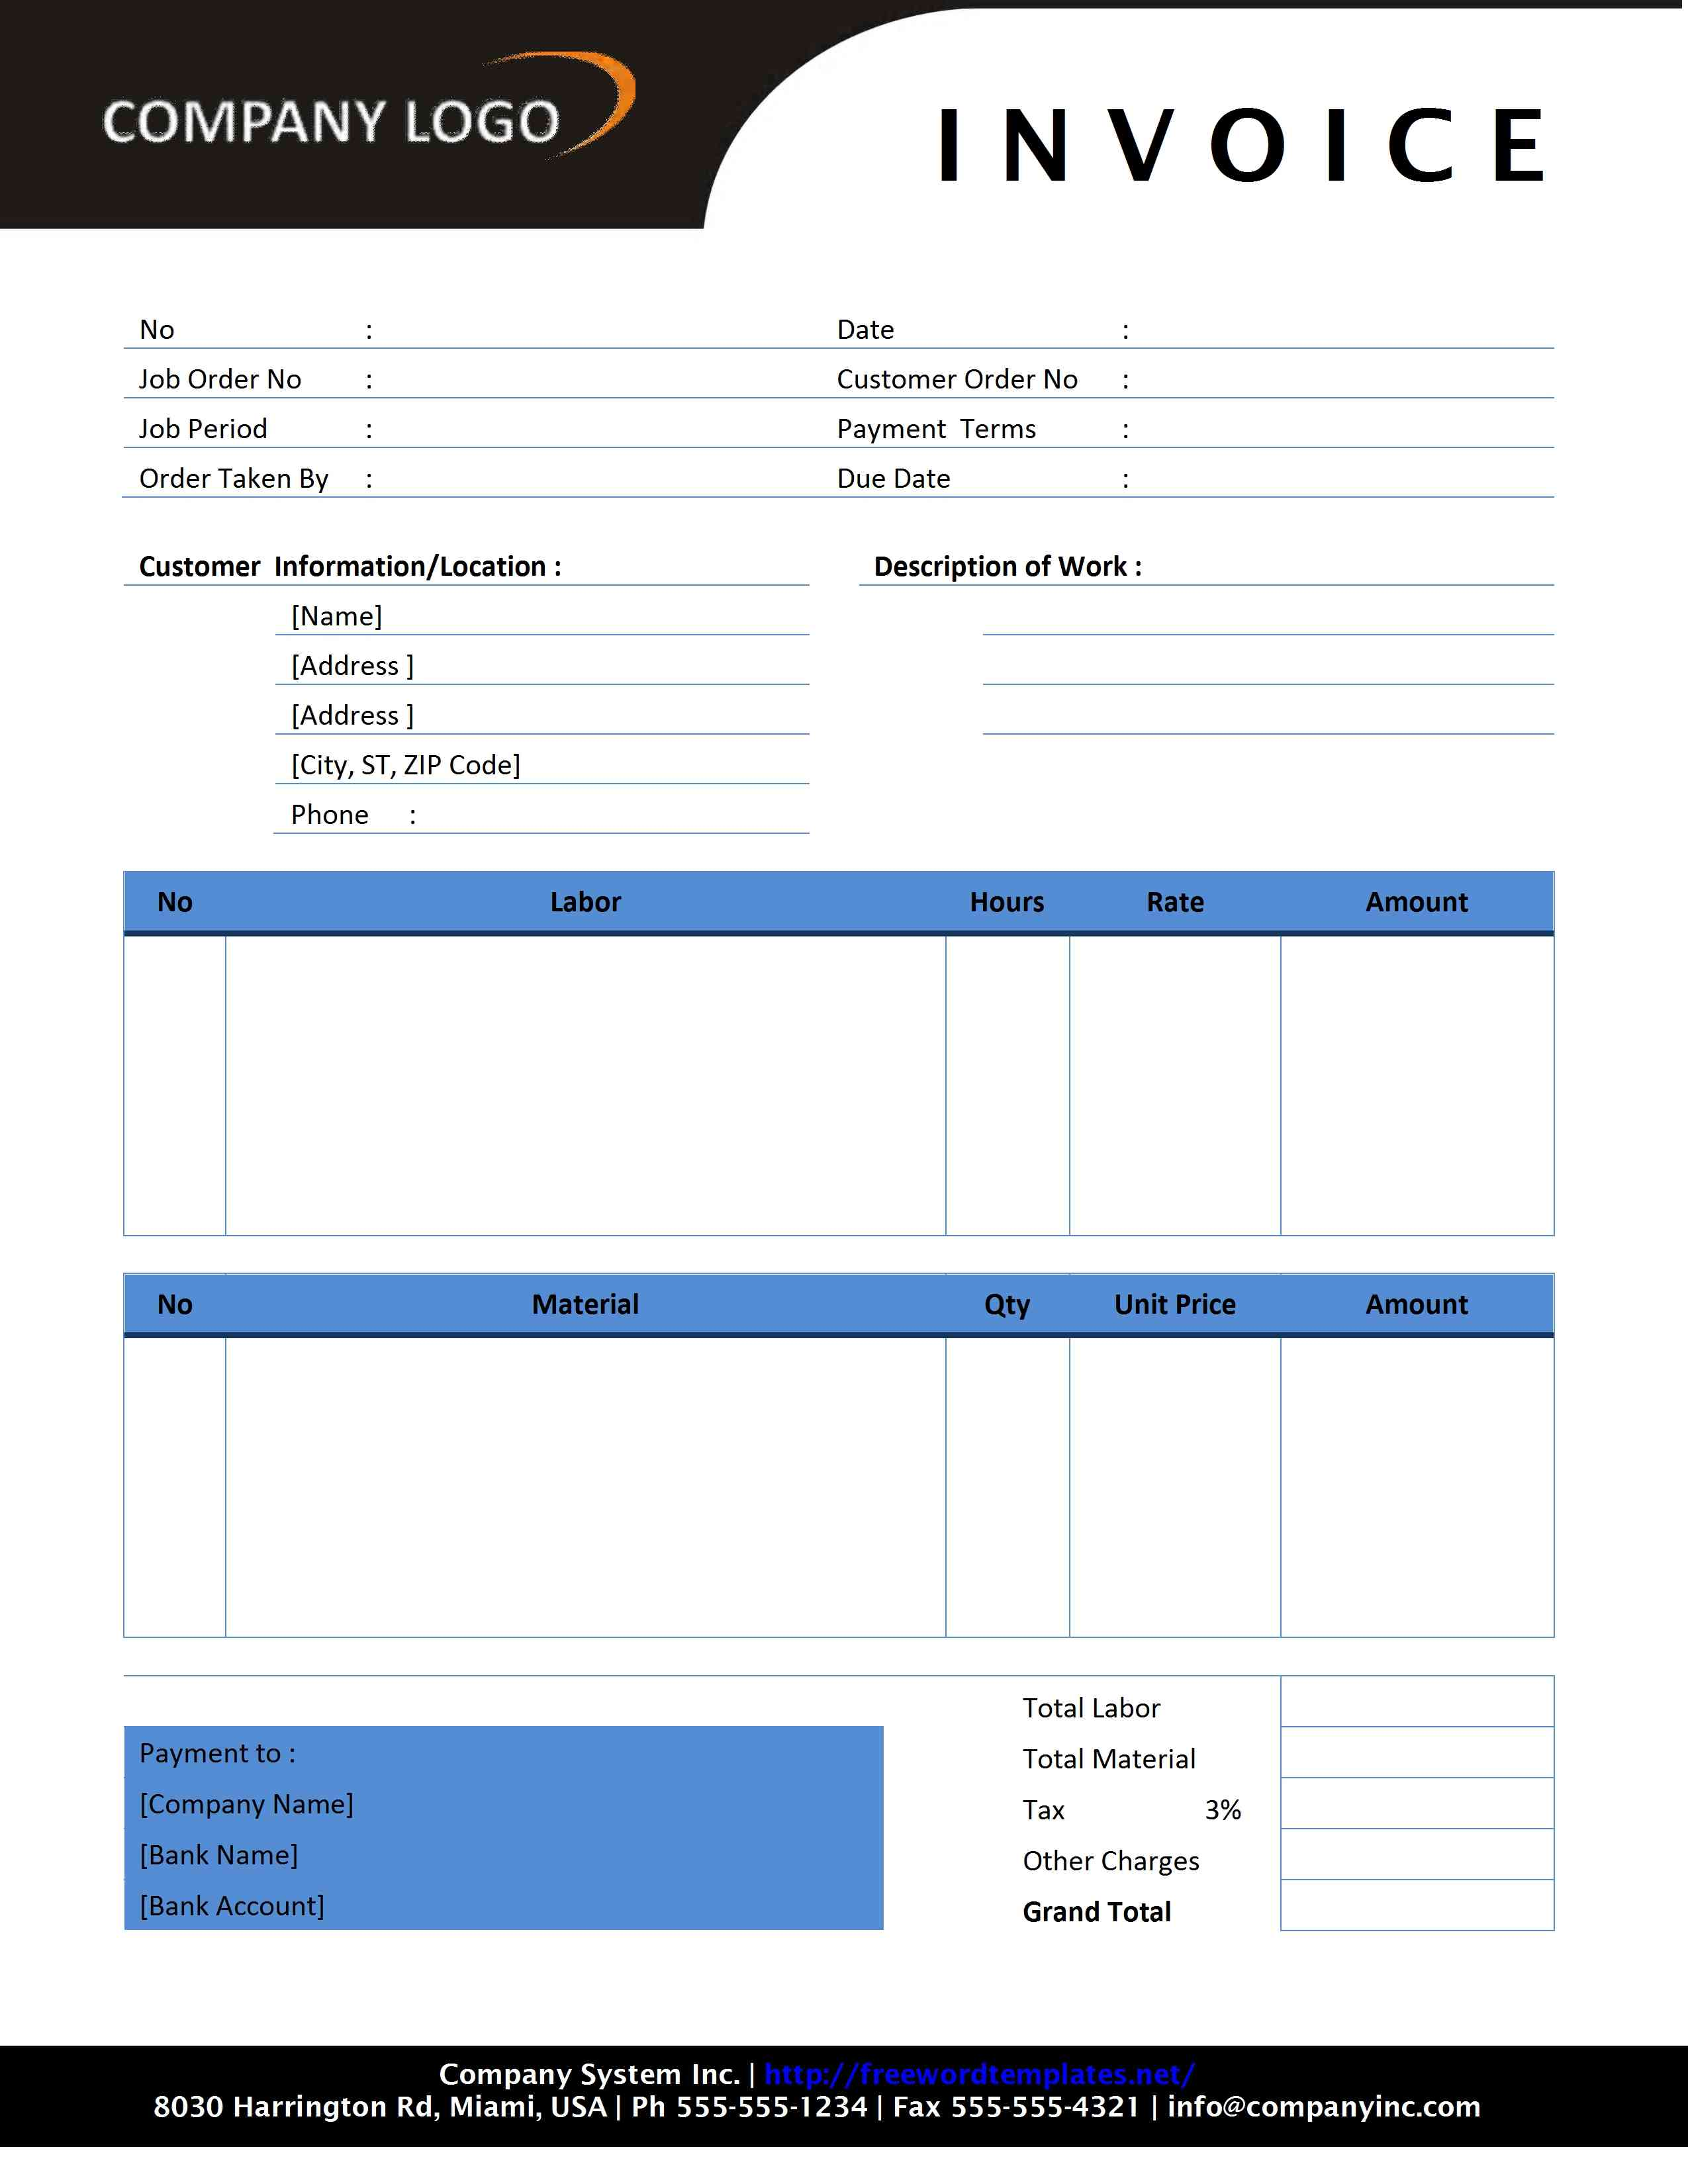 invoices templates. plumbing free microsoft word. quotation sample, Invoice templates